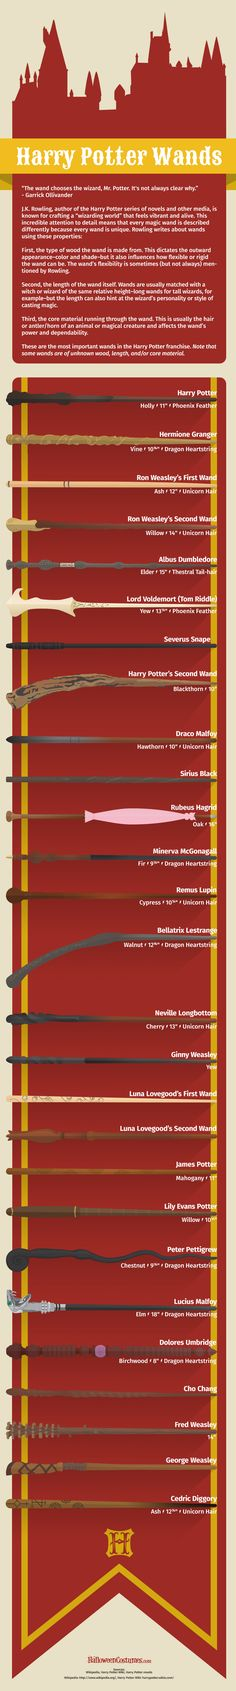 InfoGraphic: The Wands of the Wizarding World of Harry Potter Posted on 26 July, 2016 by Nate Hoffelder in Infographic